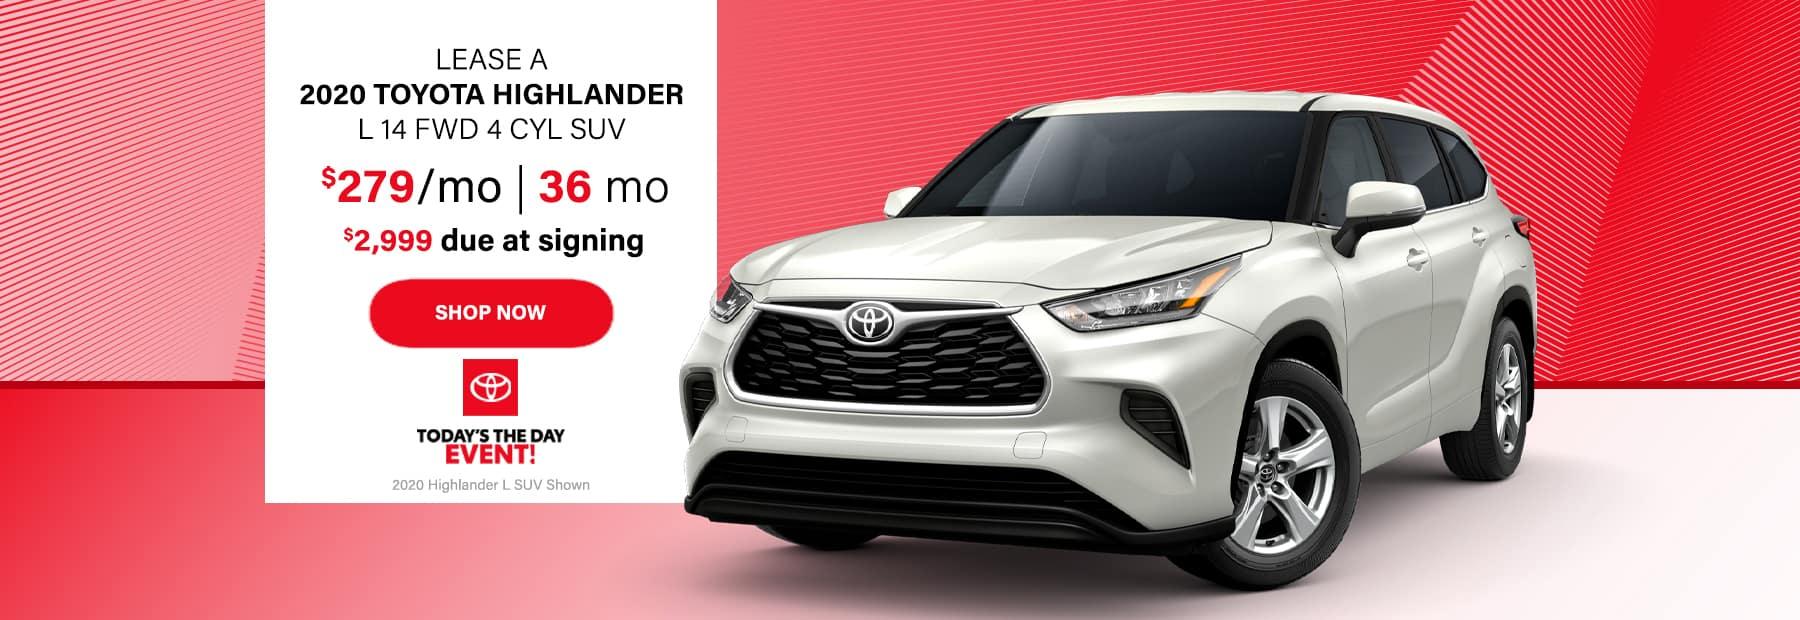 Lease a 2020 Toyota Highlander L I4 FWD 4 CYL SUV for $279/mo. for 36 mos. with $2,999 down